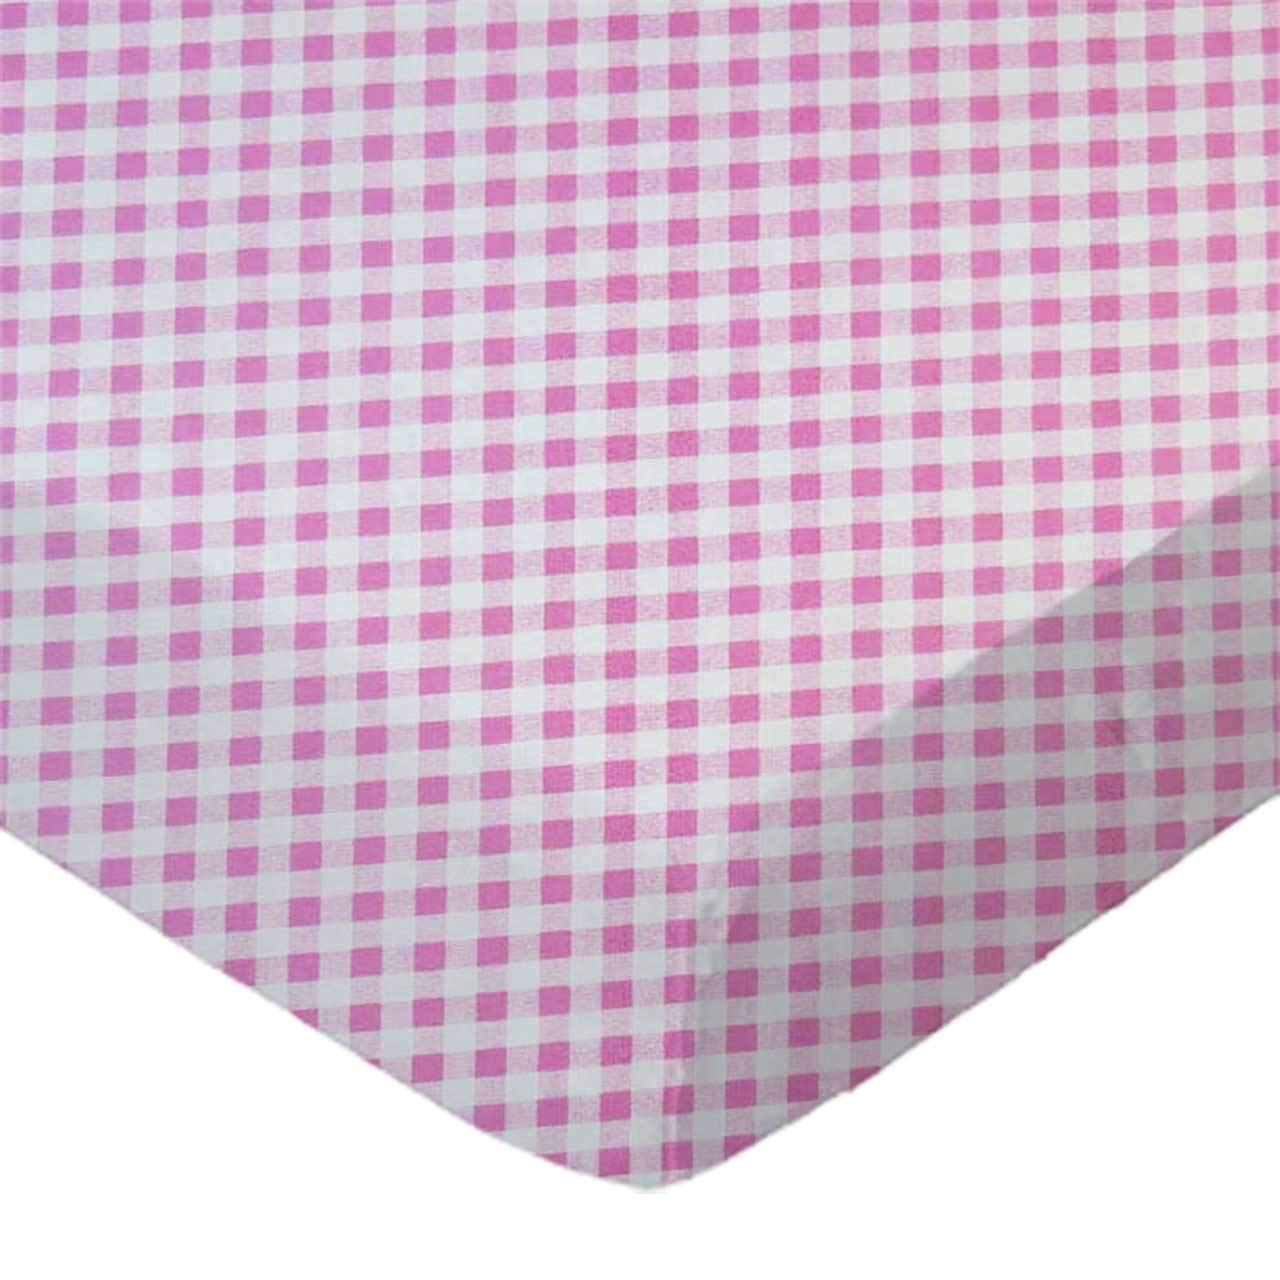 SheetWorld Fitted 100% Cotton Percale Pack N Play Sheet Fits Graco Square Play Yard 36 x 36, Pink Gingham Check, Made in USA